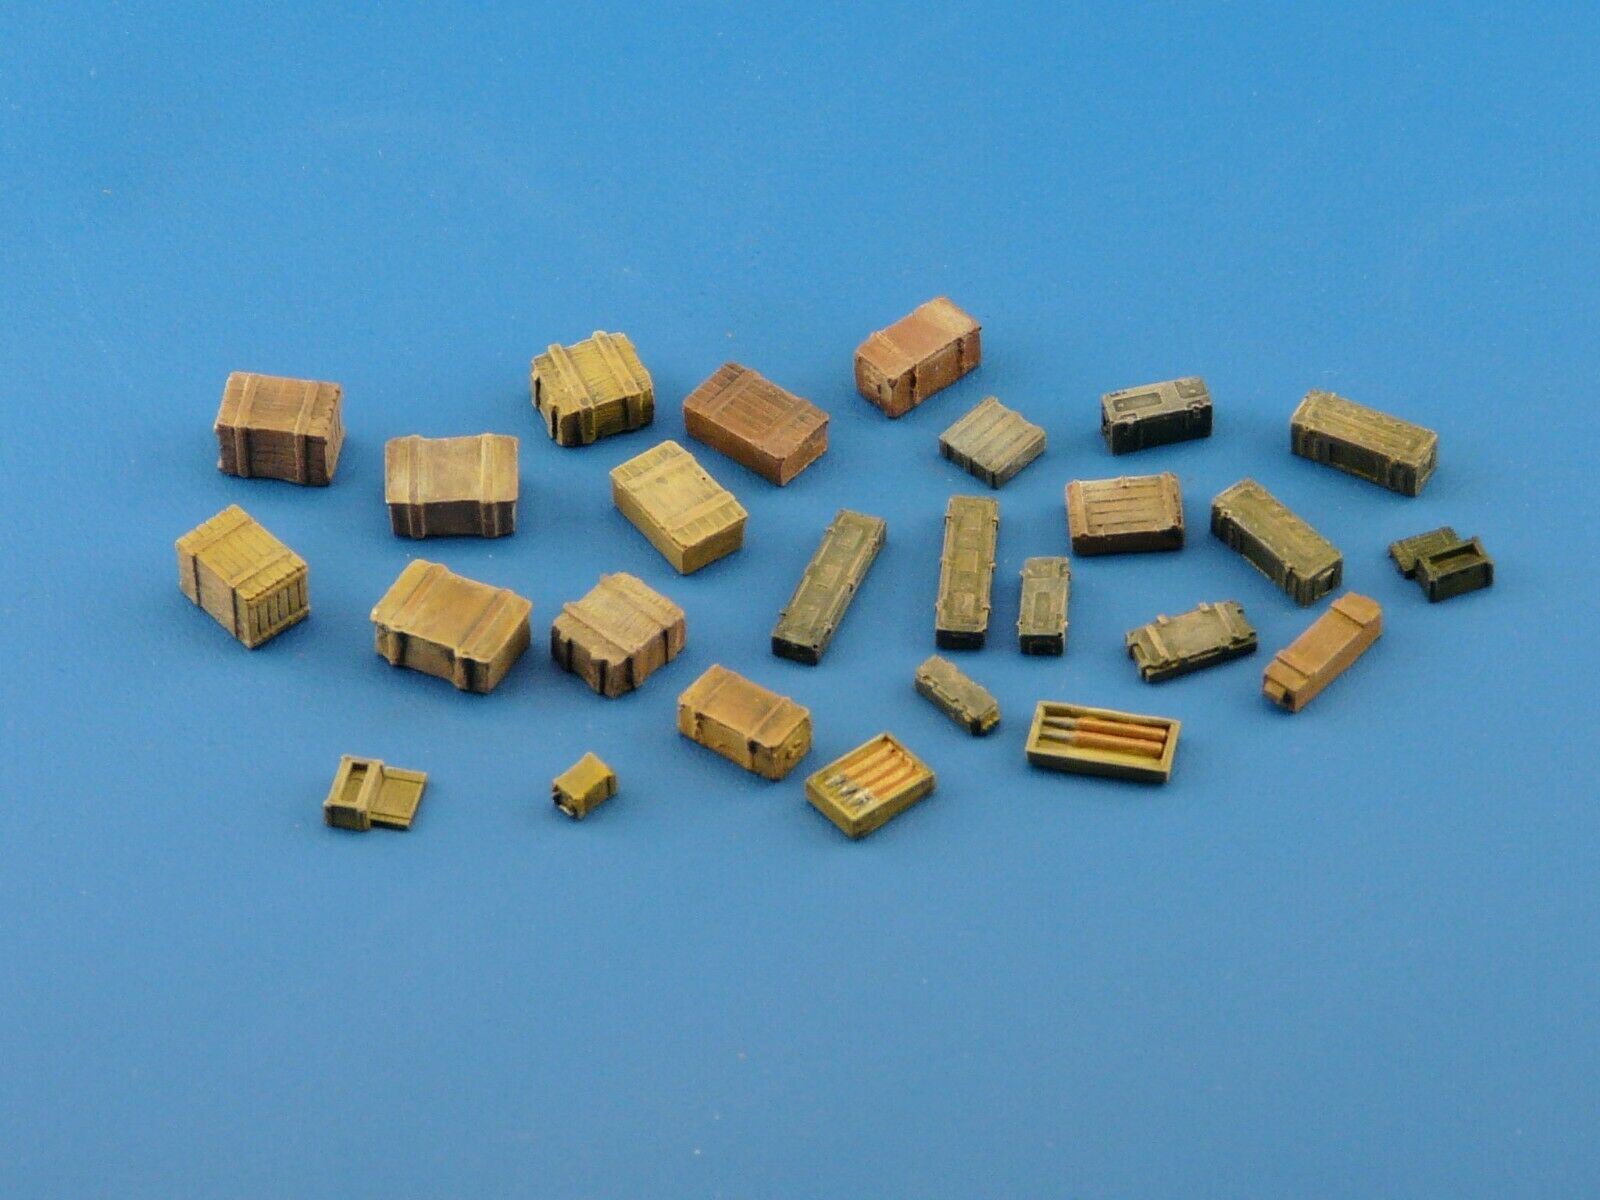 1/72  Crate and Boxes 33 Pieces Scale Modelling Resin Stowage Kit   B3 - redoguk